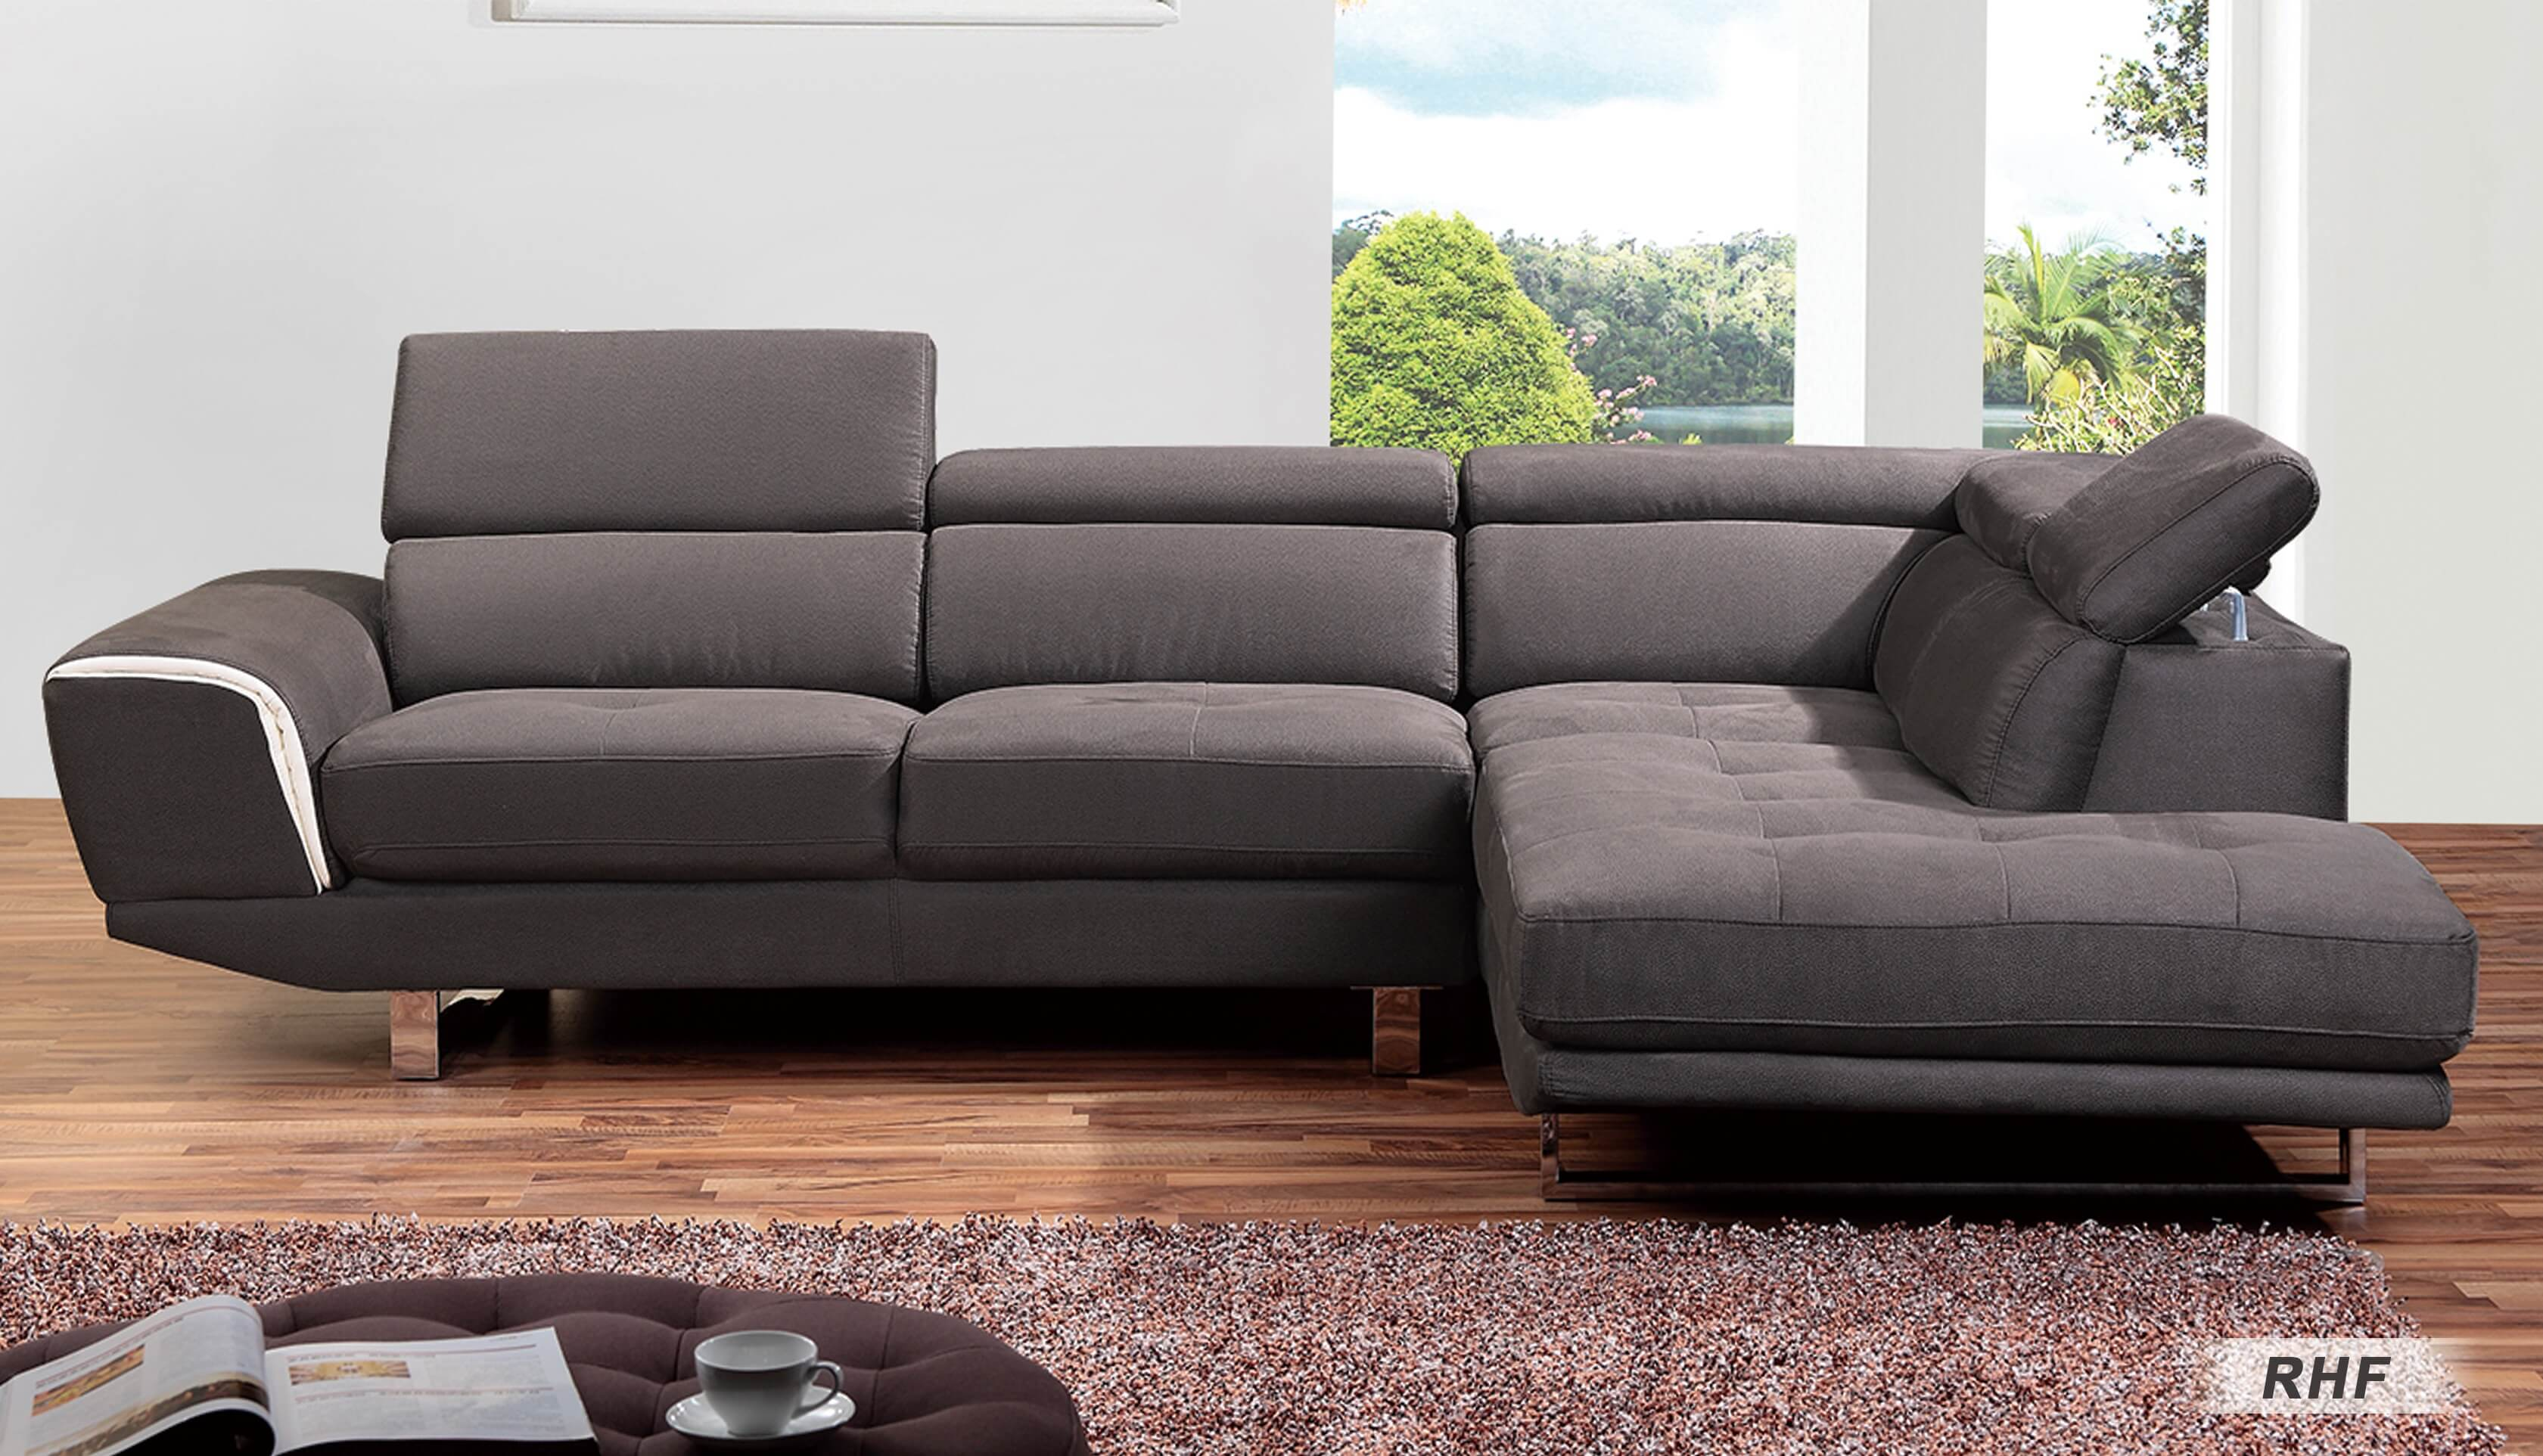 0890 Sectional Sofa Left Arm Chaise Facing By At Home Usa Sohomod Com